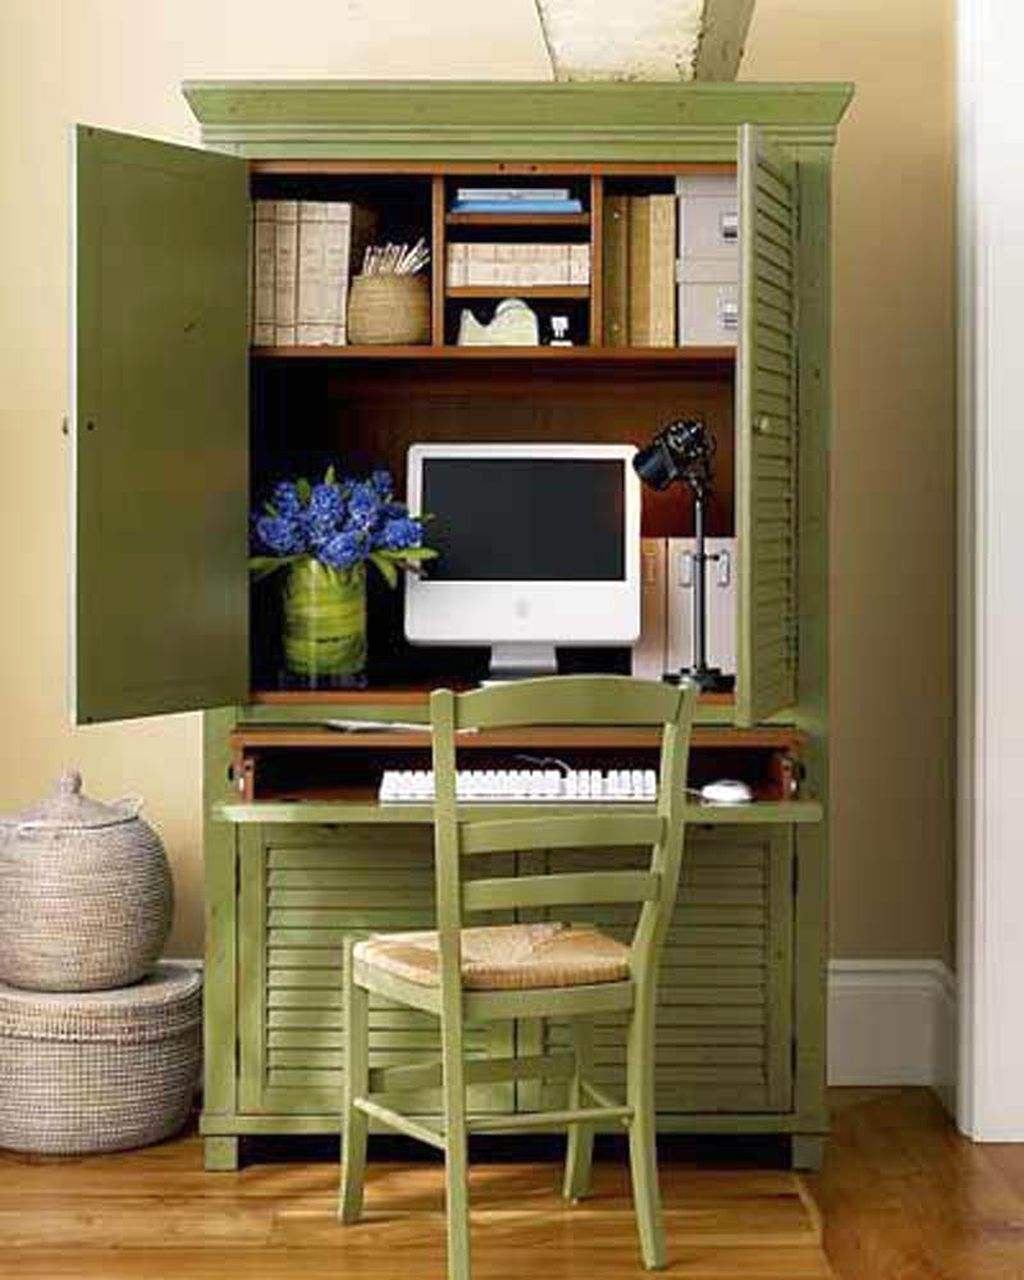 Green cupboard home office design ideas for small spaces Home office room design ideas